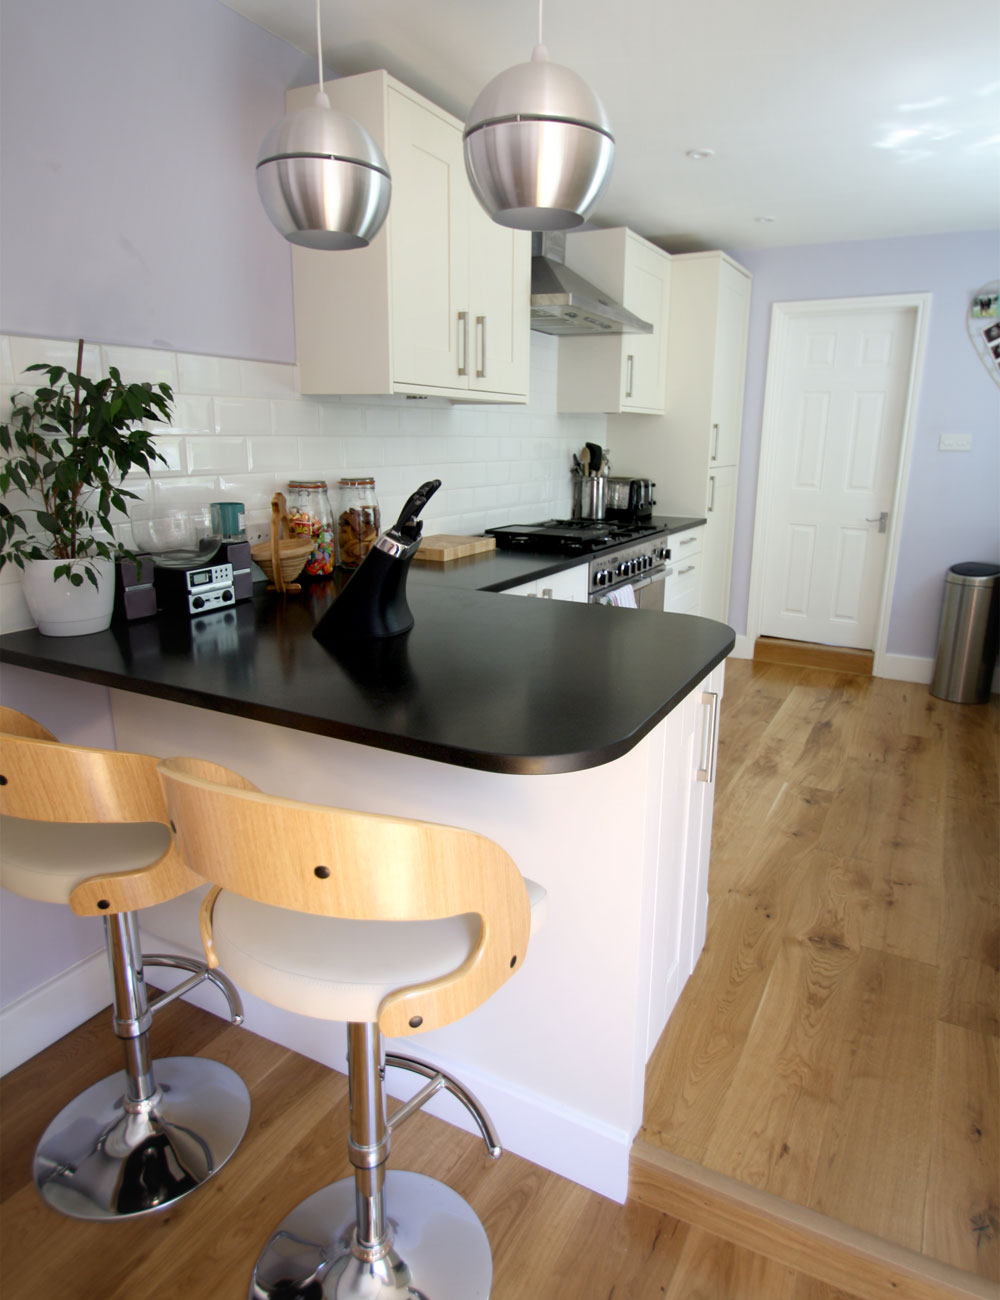 kitchen design kingston upon thames kitchen renovation in kingston upon thames seal homes 791